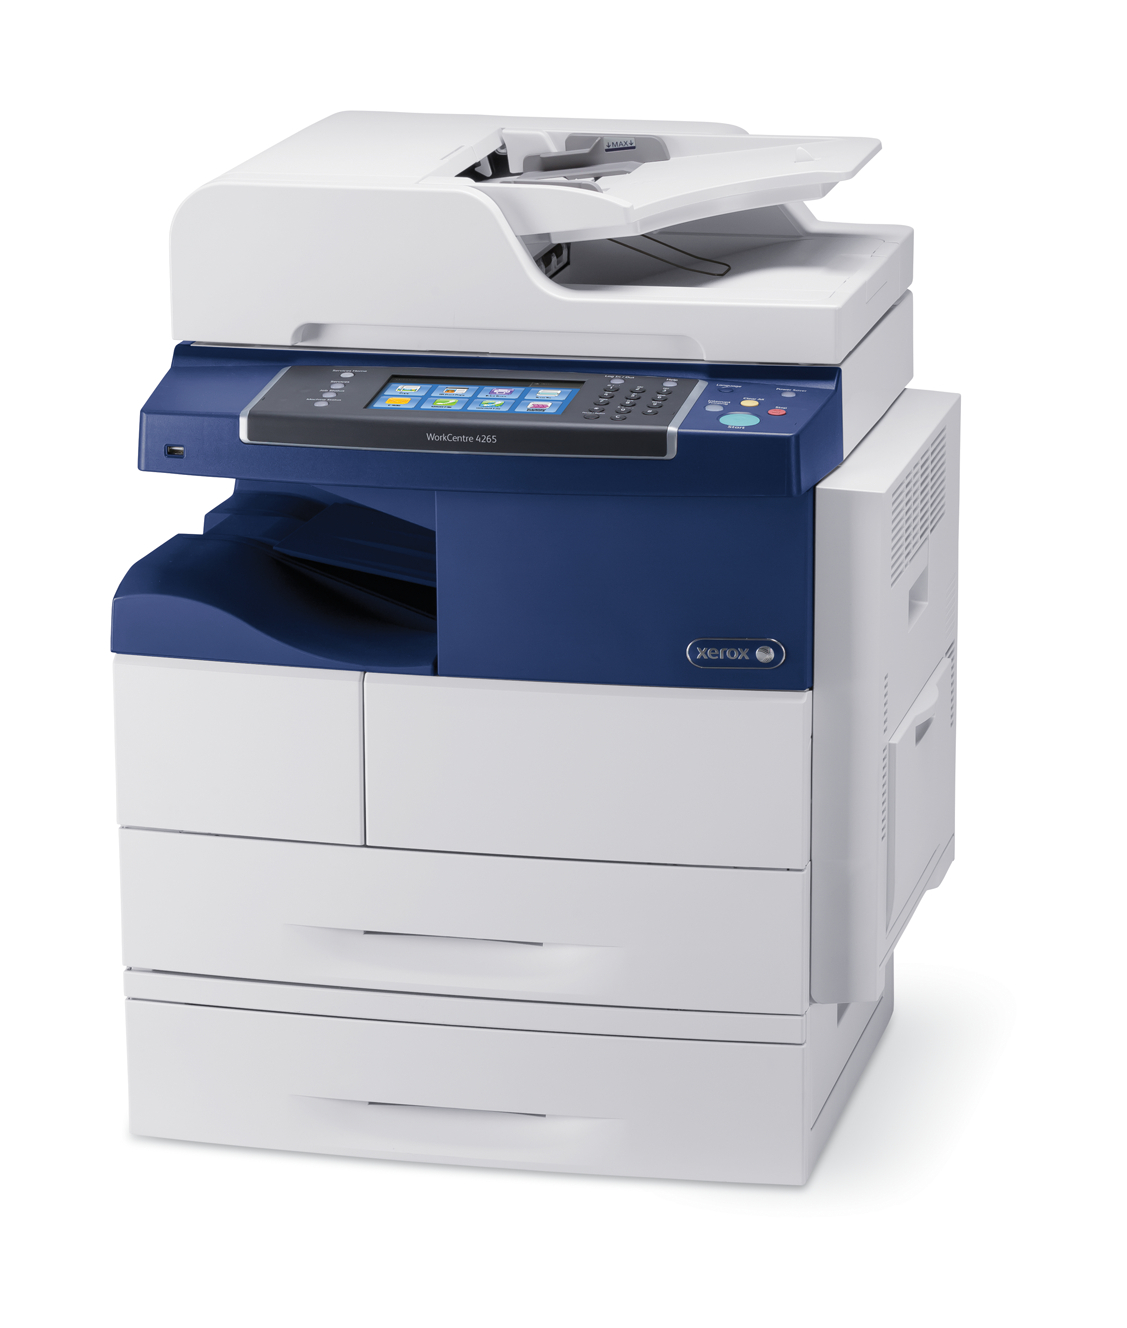 Xerox WorkCentre 4265 – Premier Technology Group